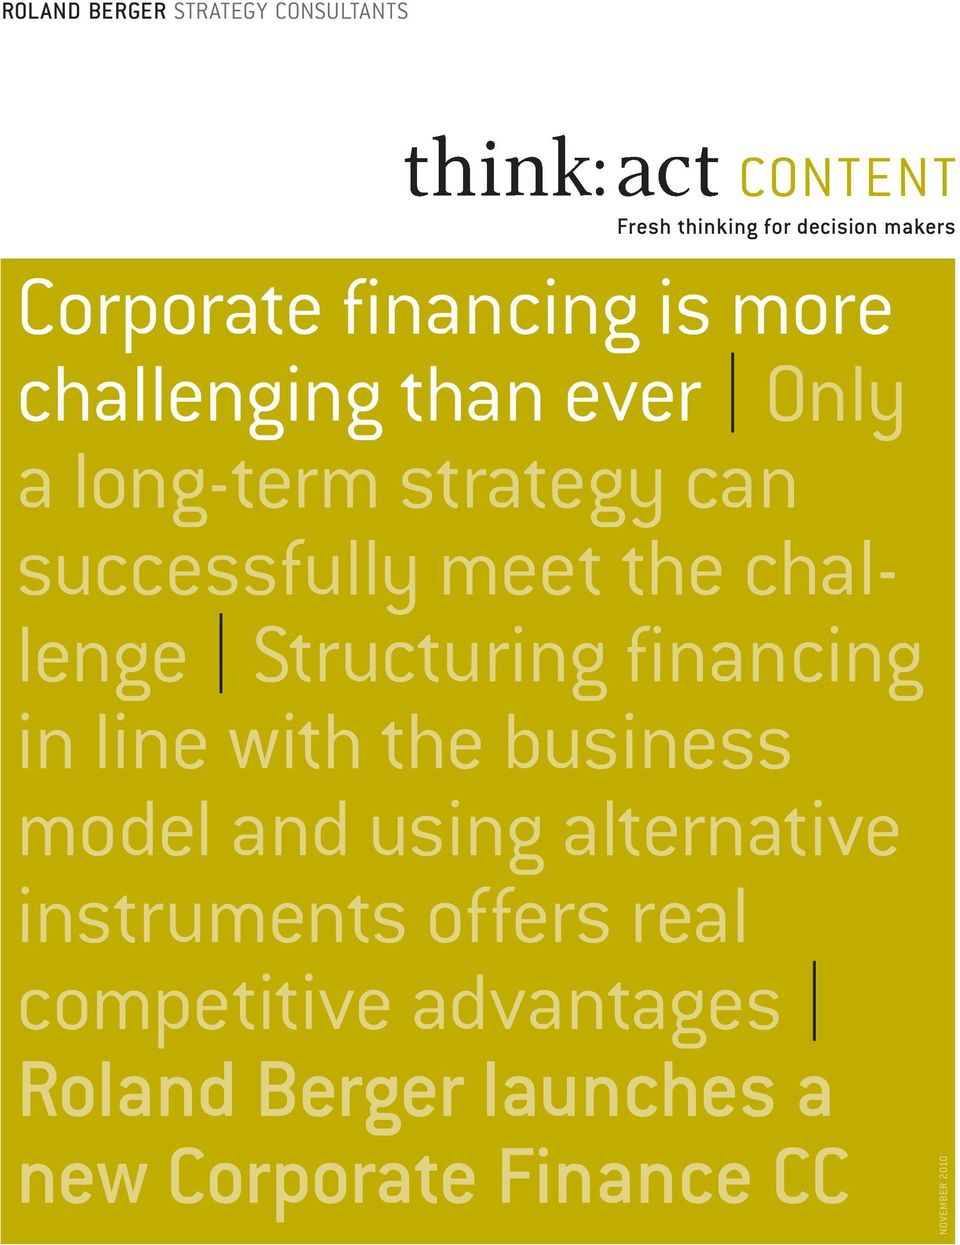 Structuring financing in line with the business model and using alternative instruments offers